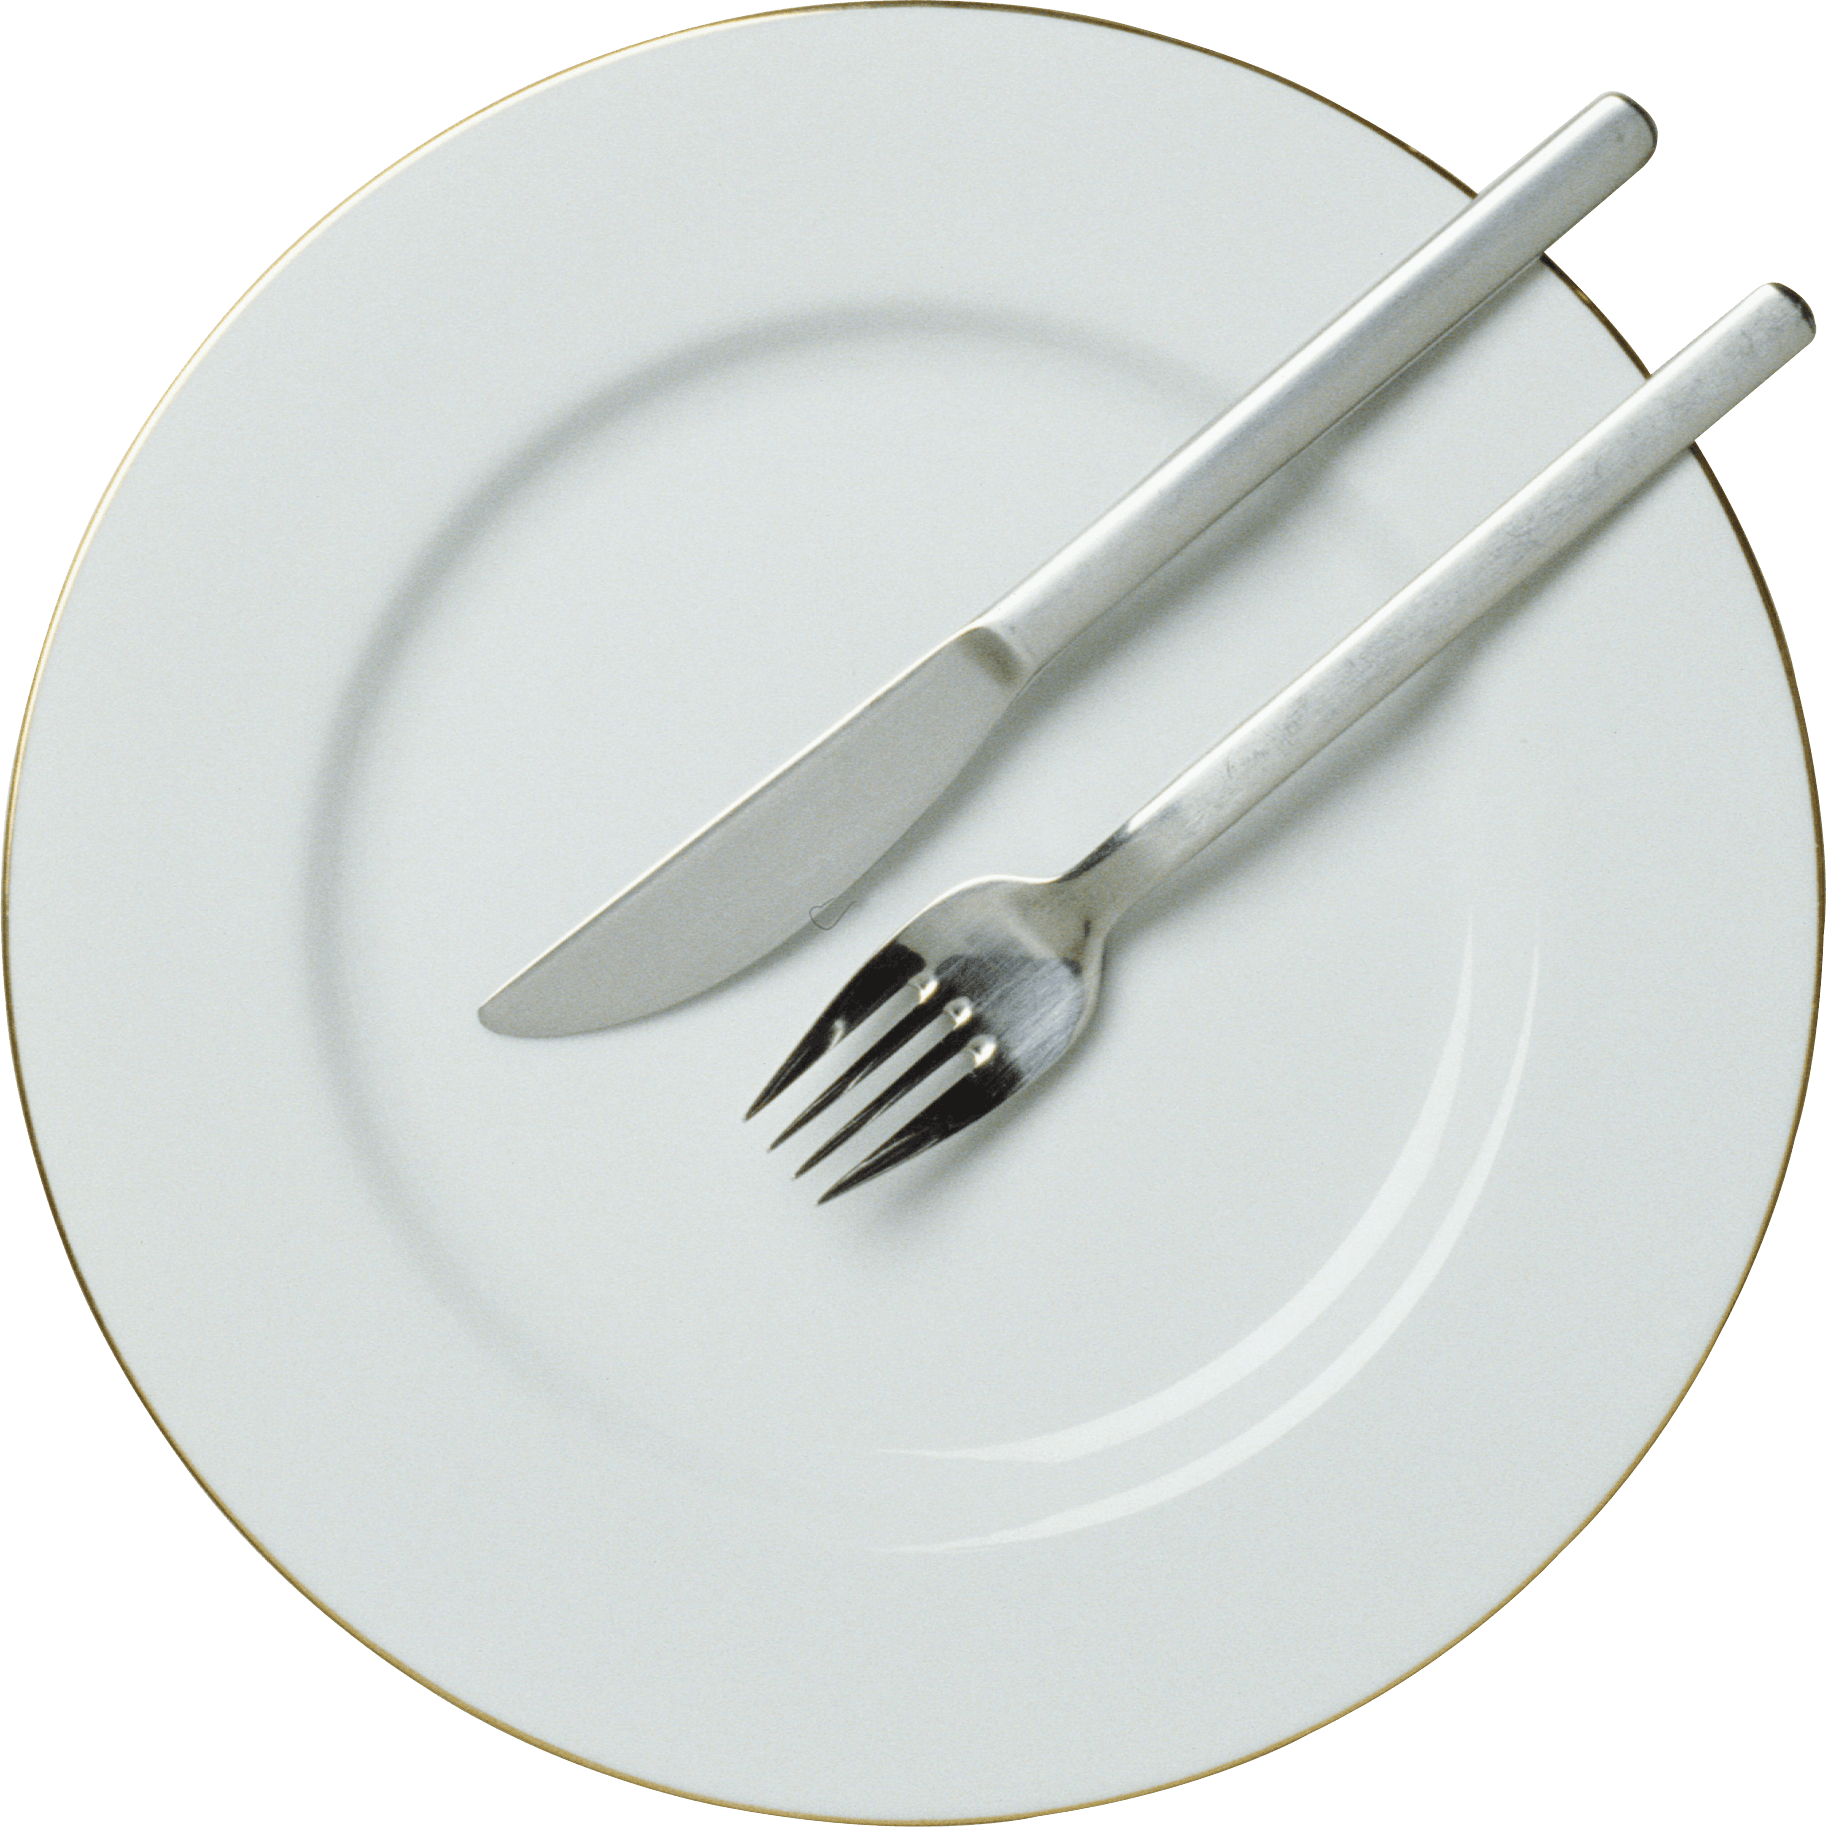 Fork Knife Plate - Plate, Transparent background PNG HD thumbnail